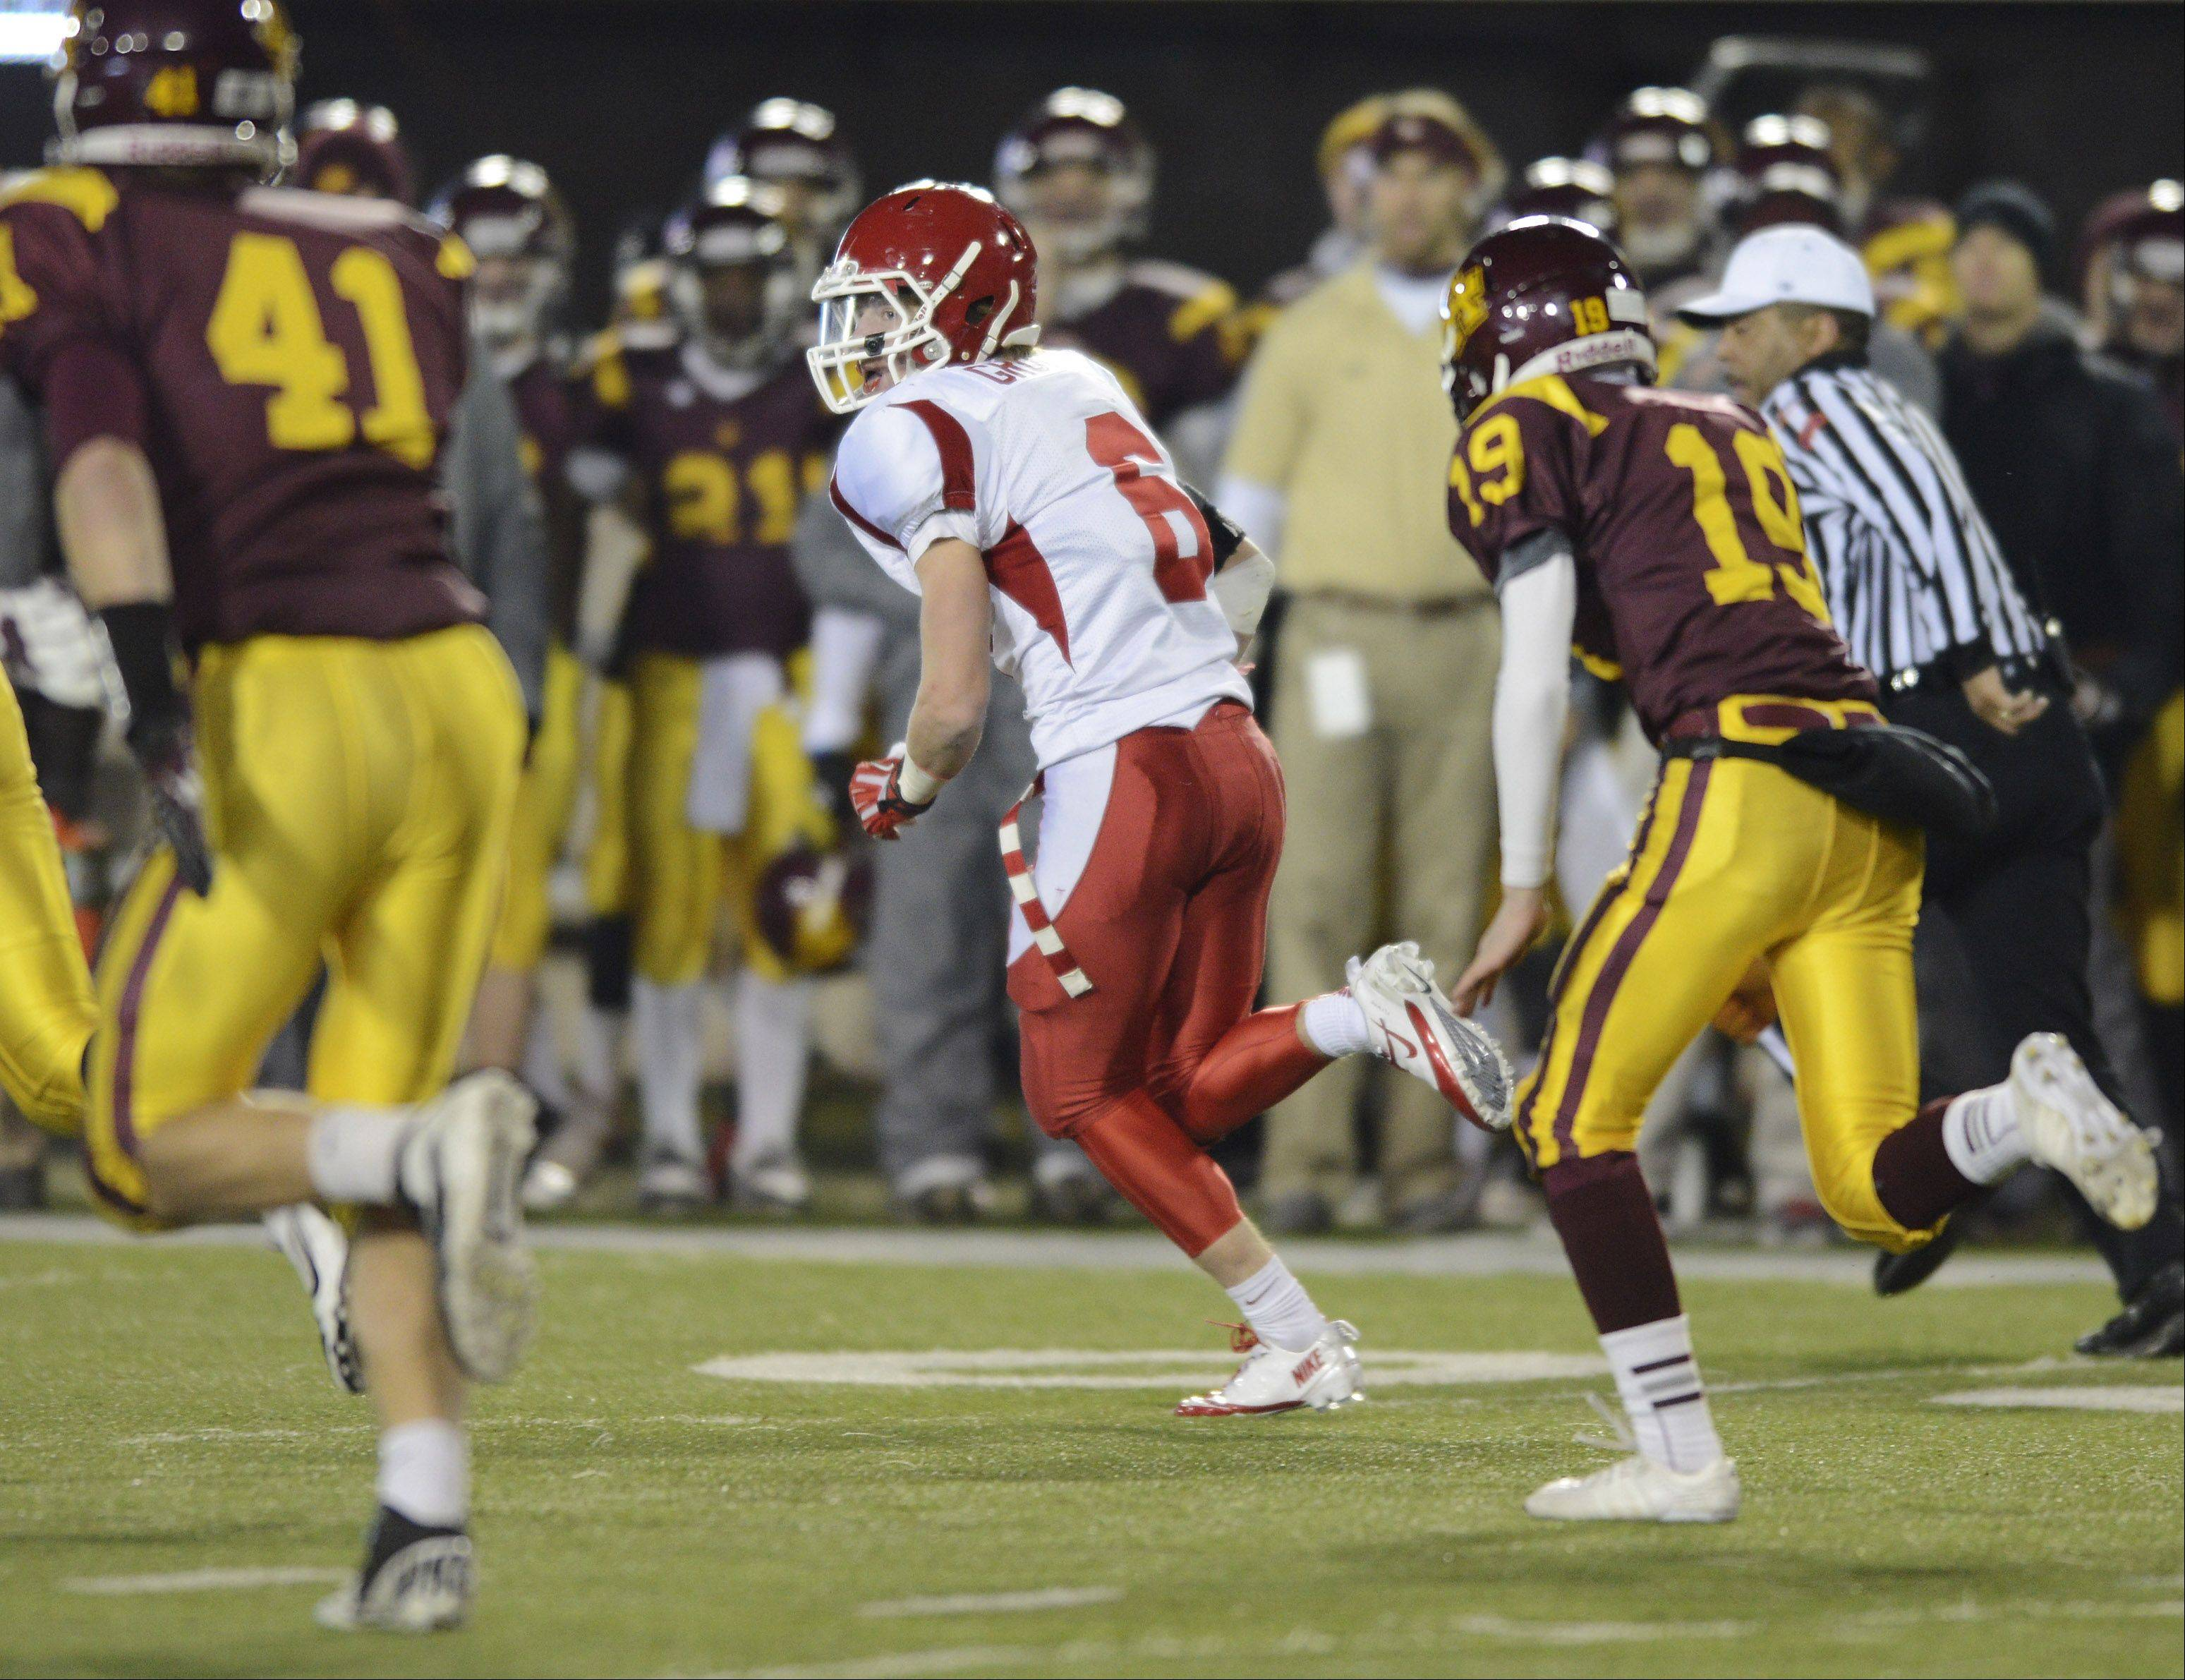 Naperville Central's Dillion Grooss runs a blocked field goal for a touchdown against Loyola during the class 8A football final in DeKalb Saturday.